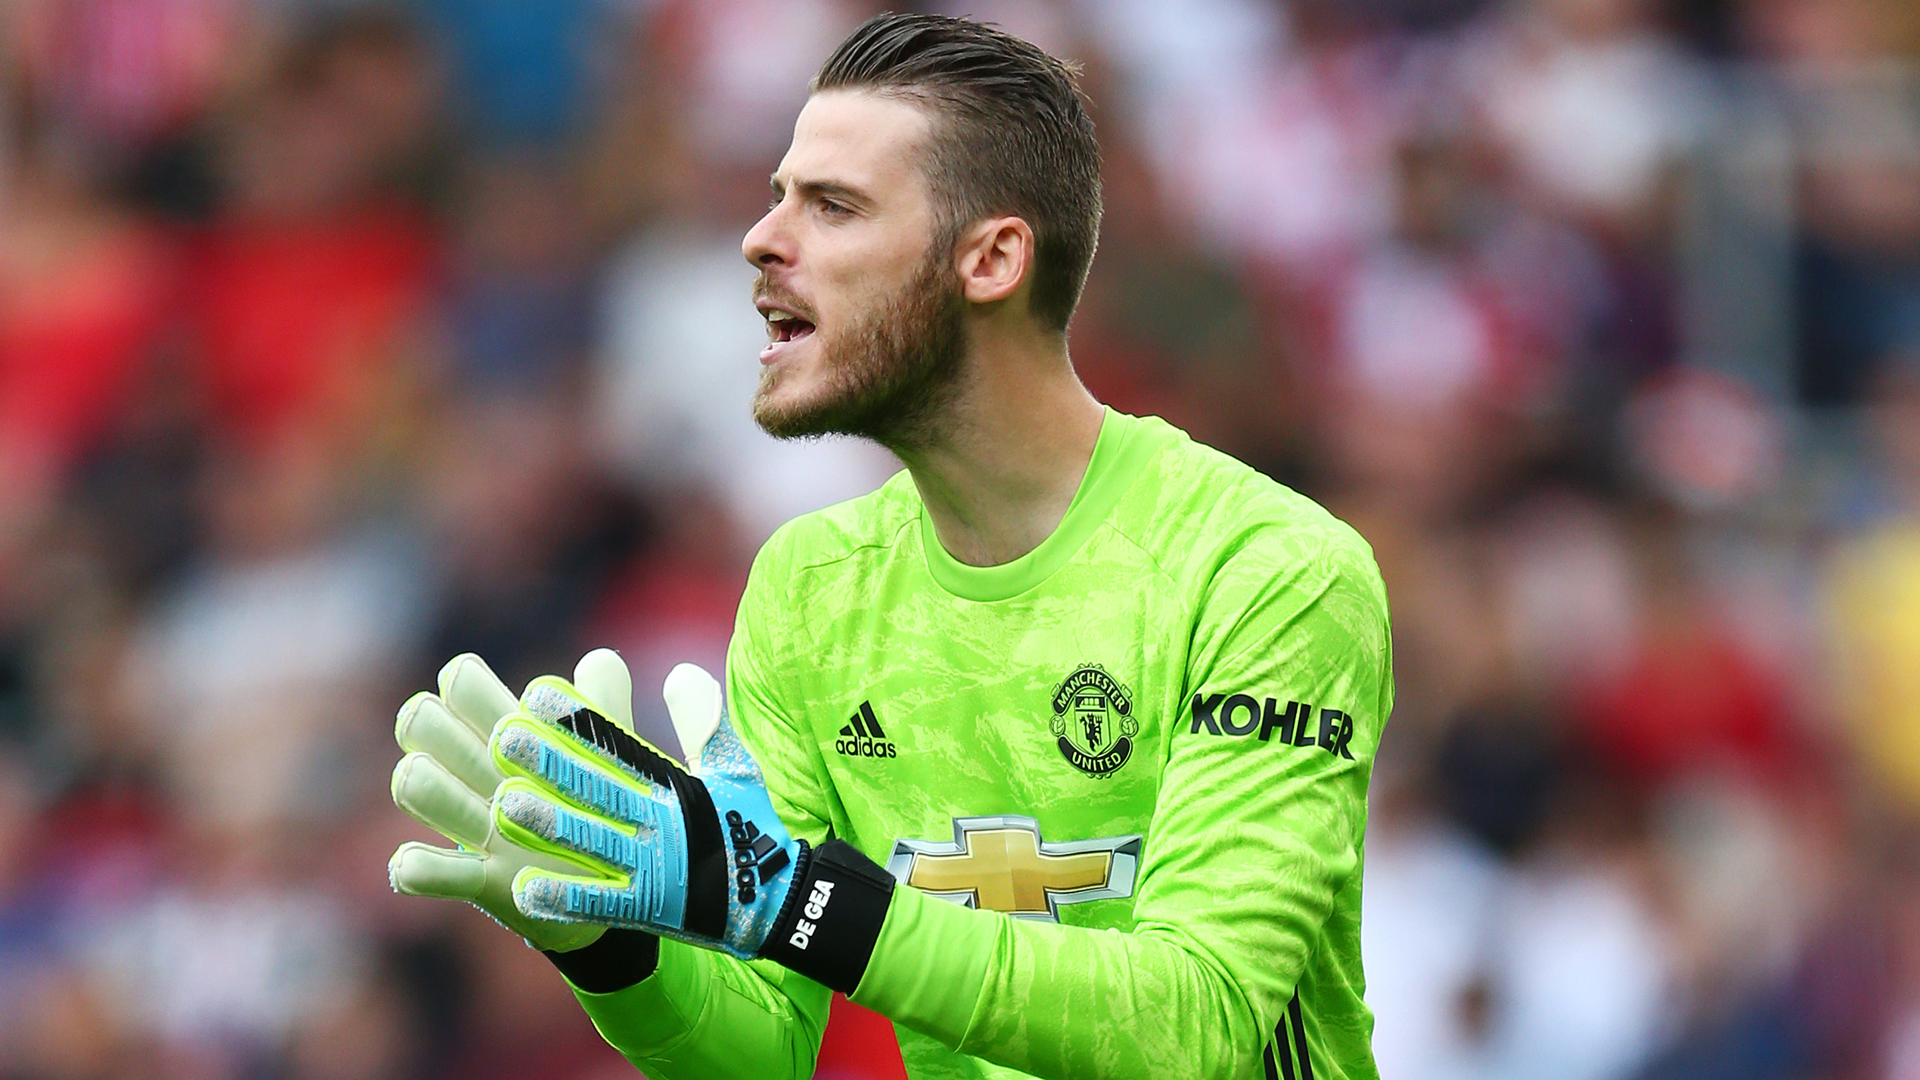 De Gea has focus back after signing Manchester United extension – Solskjaer